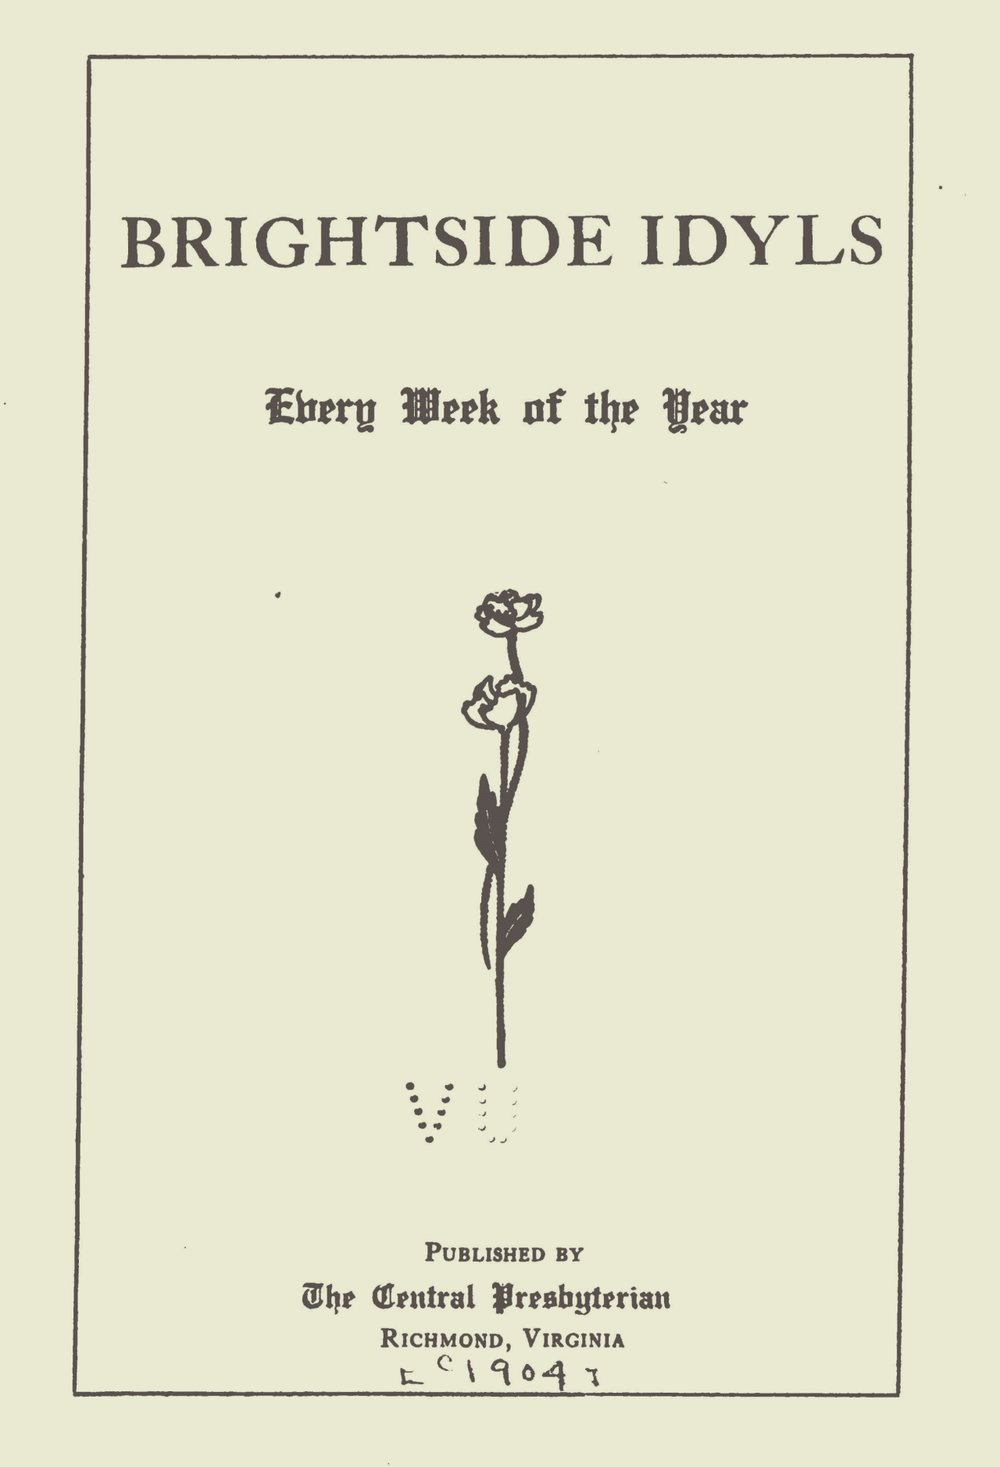 Smith, James Power, Brightside Idyls Title Page.jpg